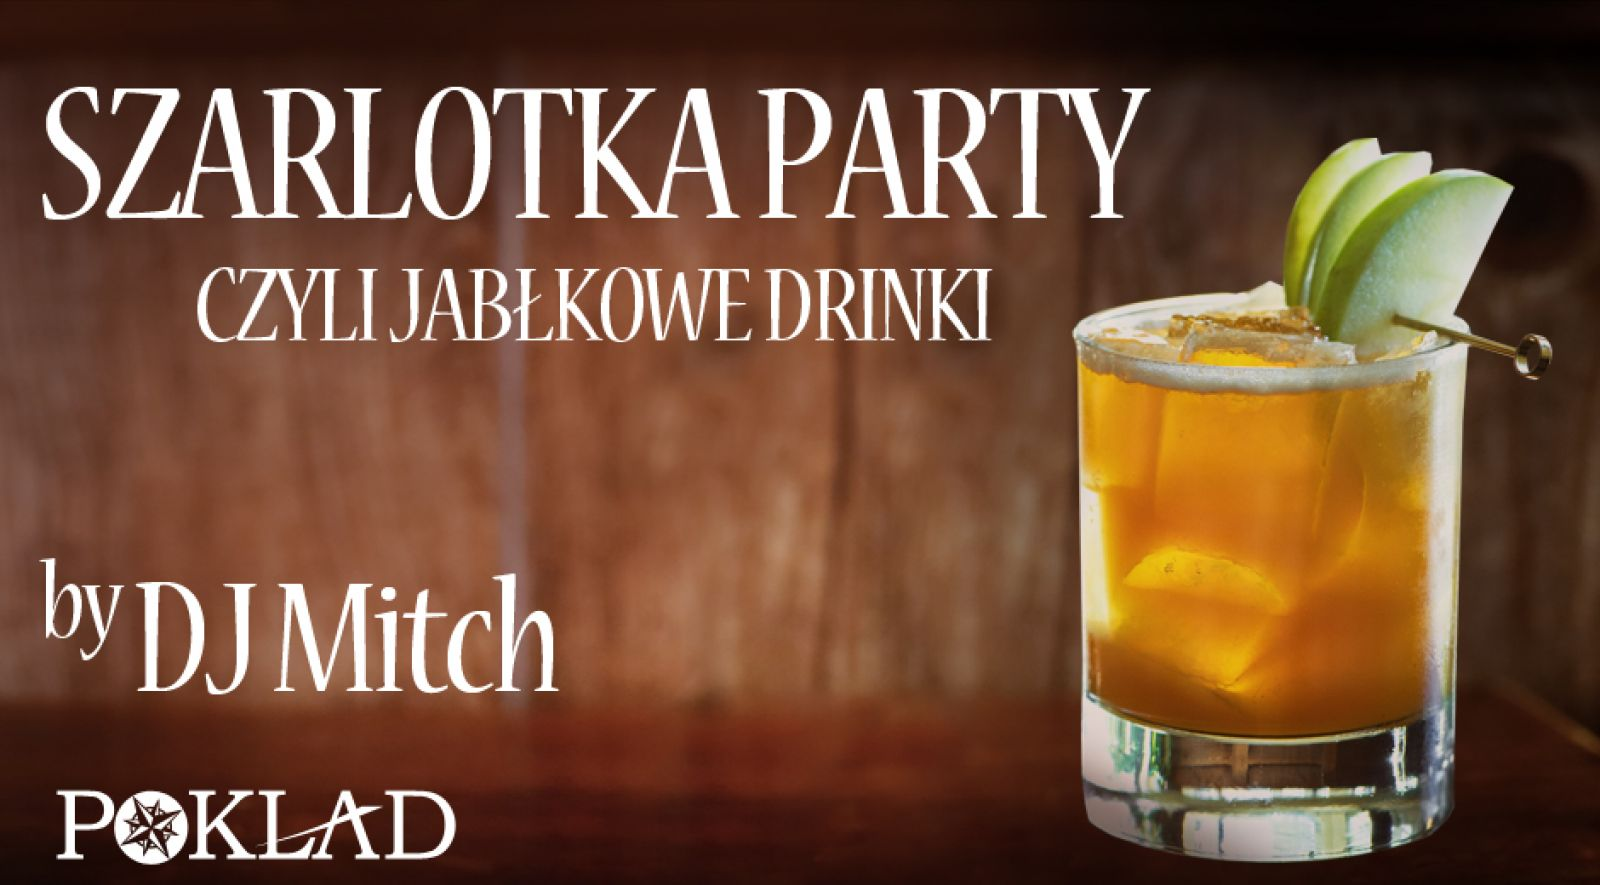 11.10 - Szarlotka Party by Dj Mitch